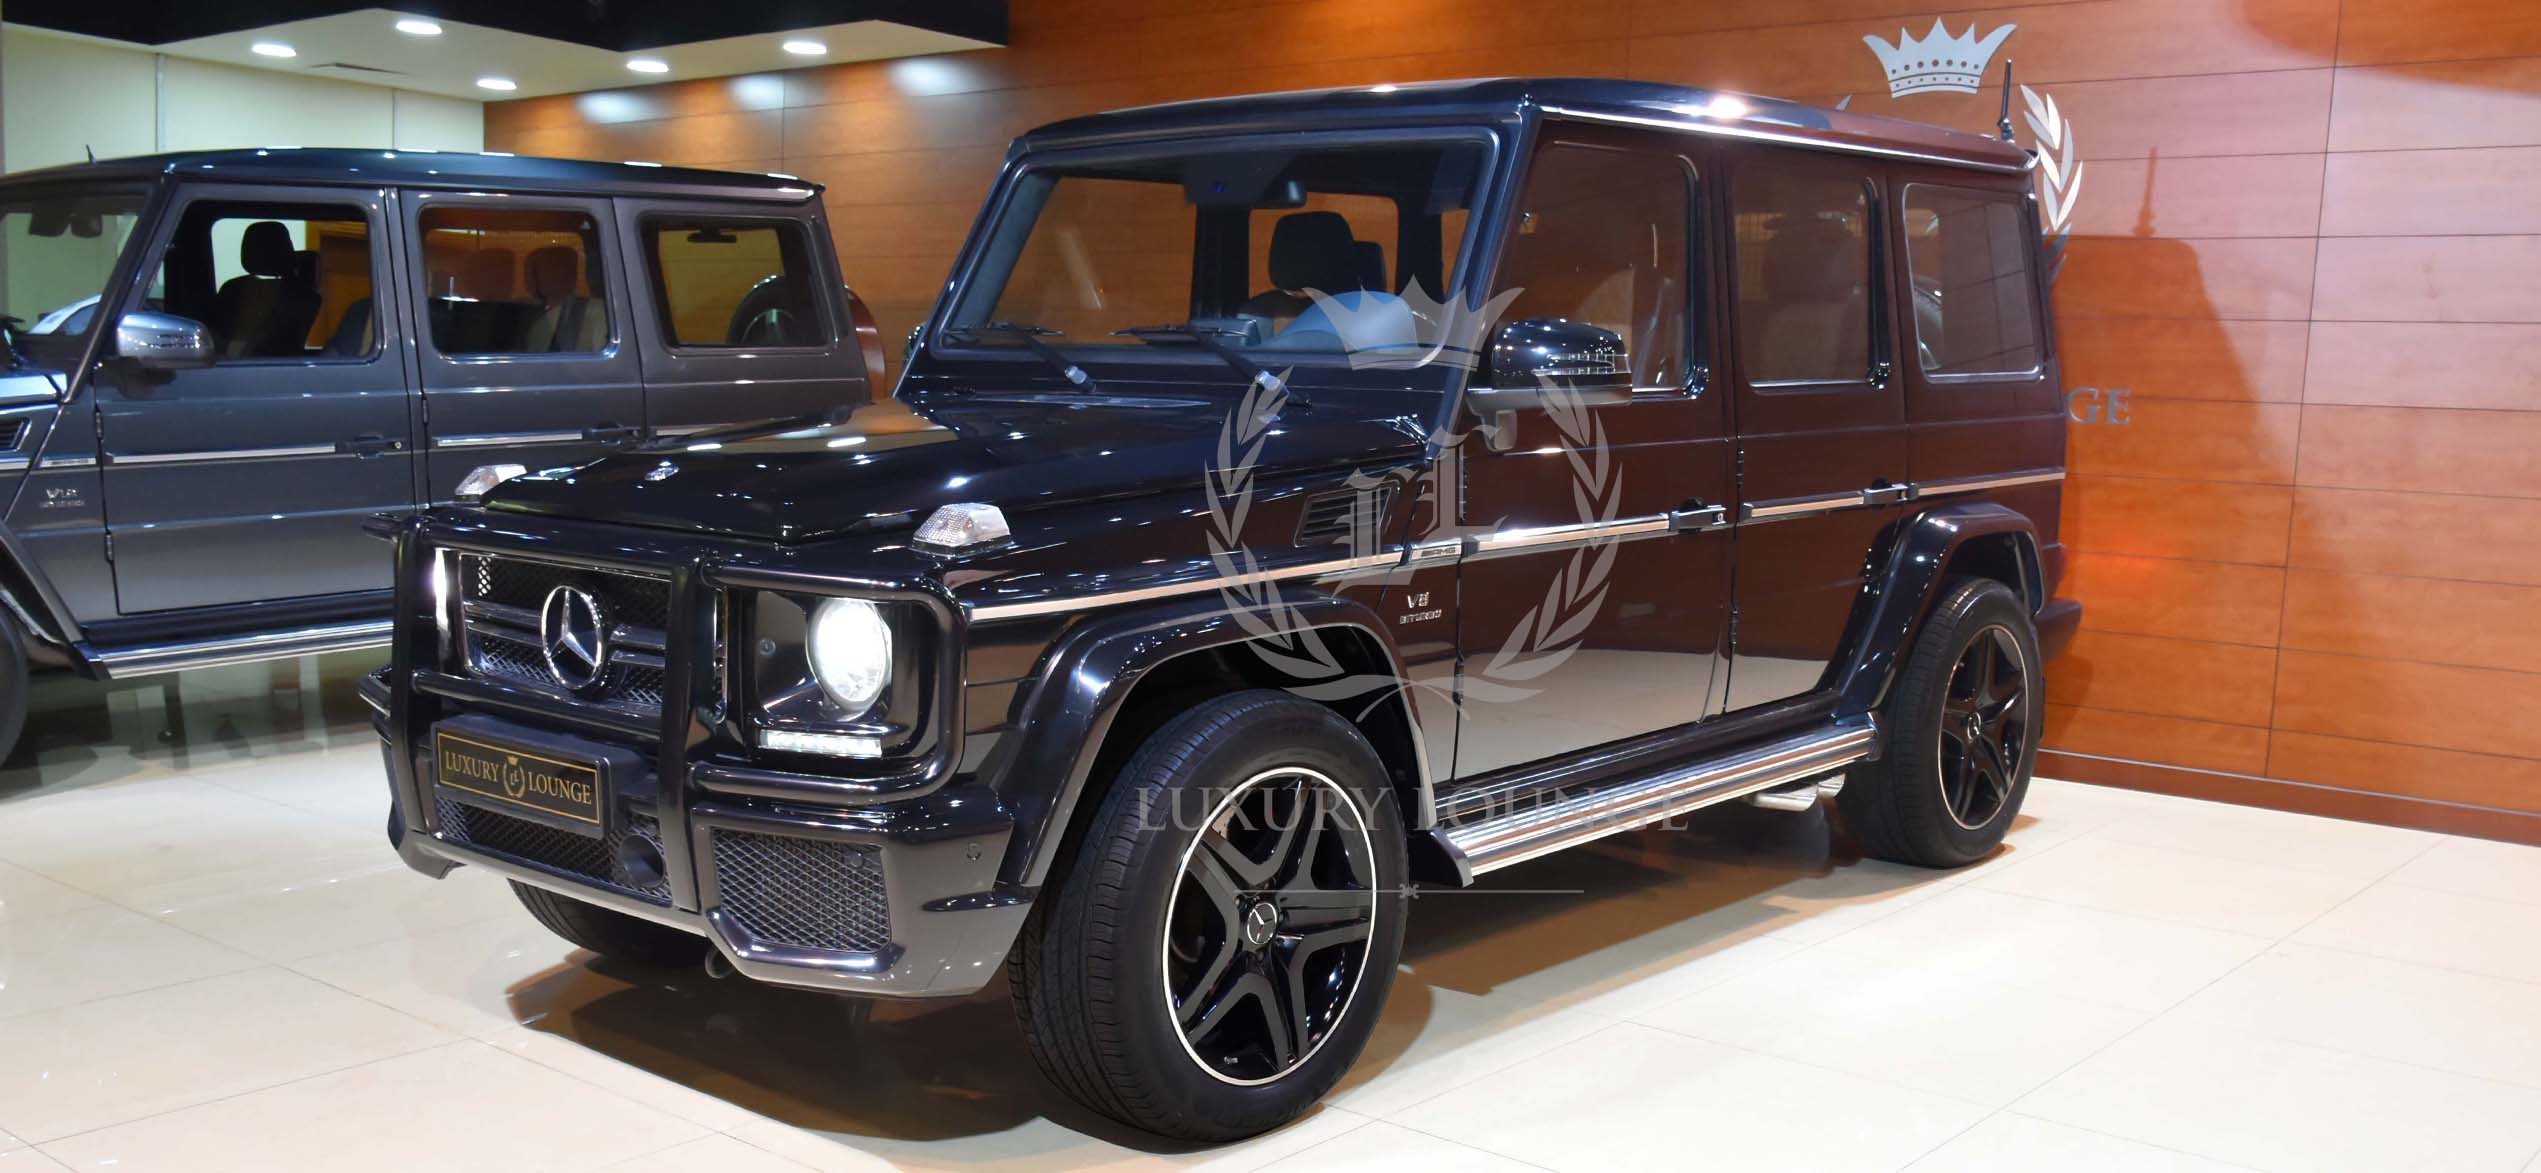 2014 MERCEDES BENZ G 63 AMG,GCC SPECS,FULL SERVICE HISTORY Show Phone Number